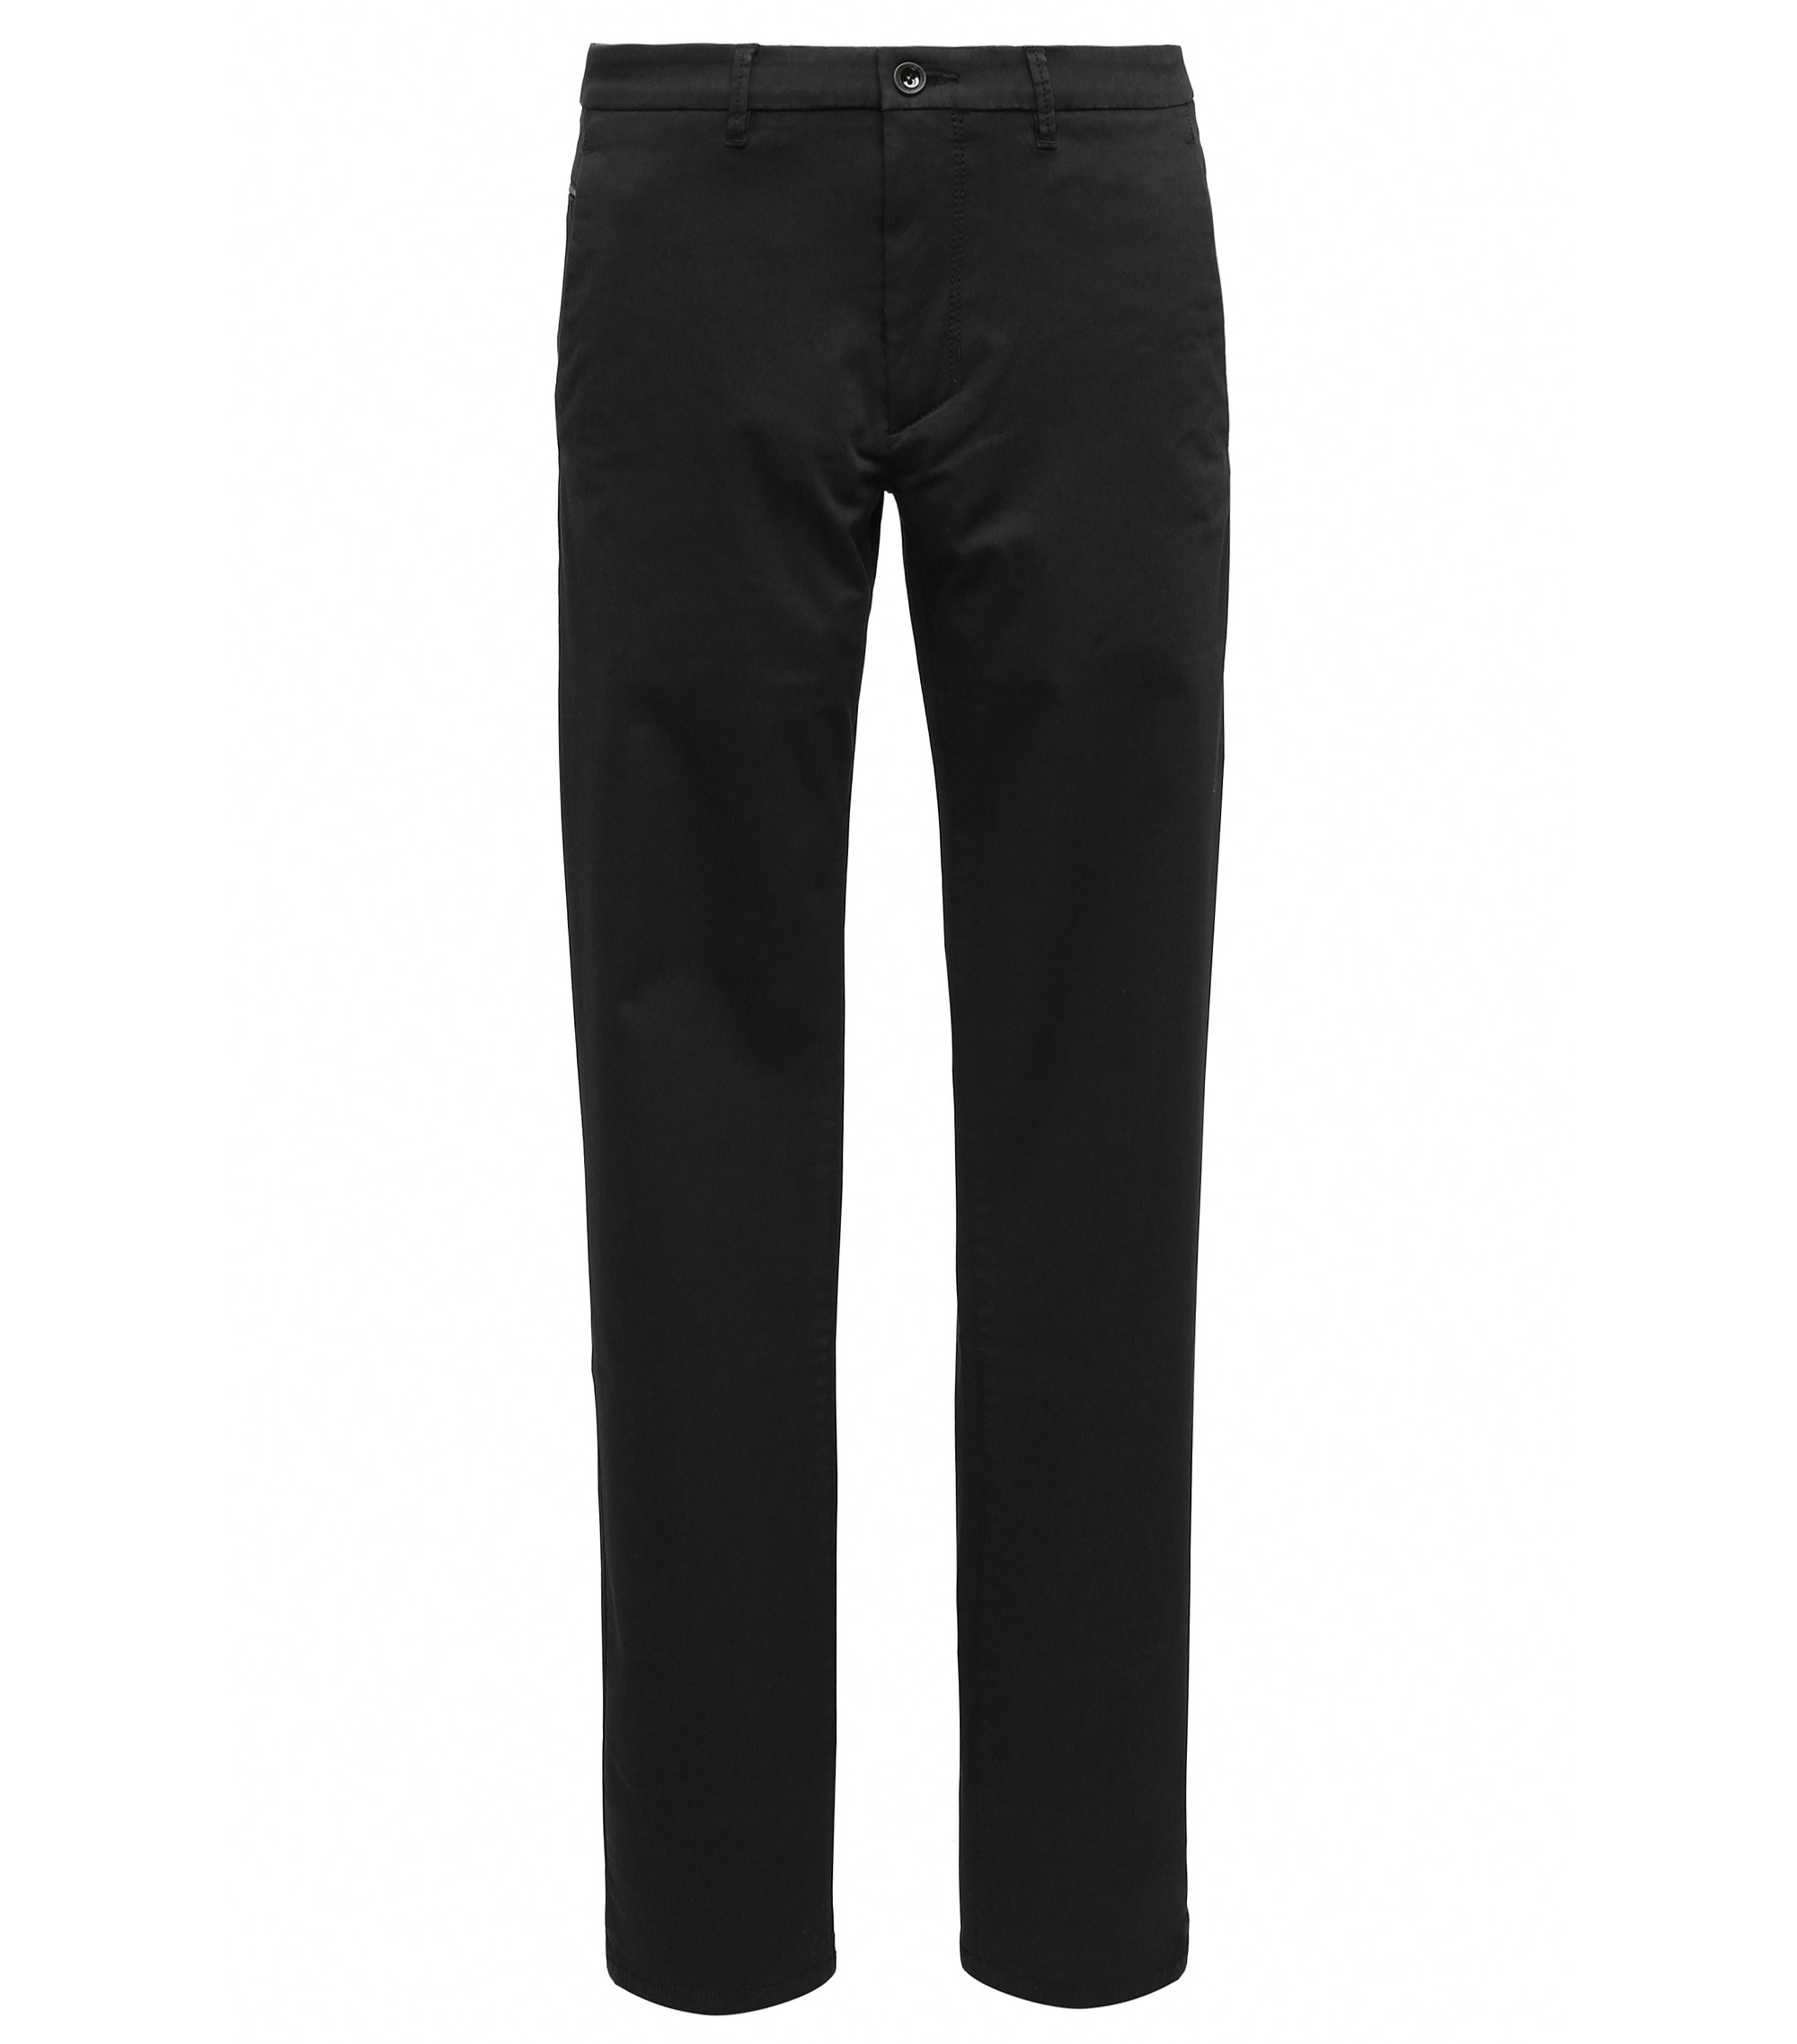 Chino Slim Fit en coton mélangé stretch à la finition satinée, Noir